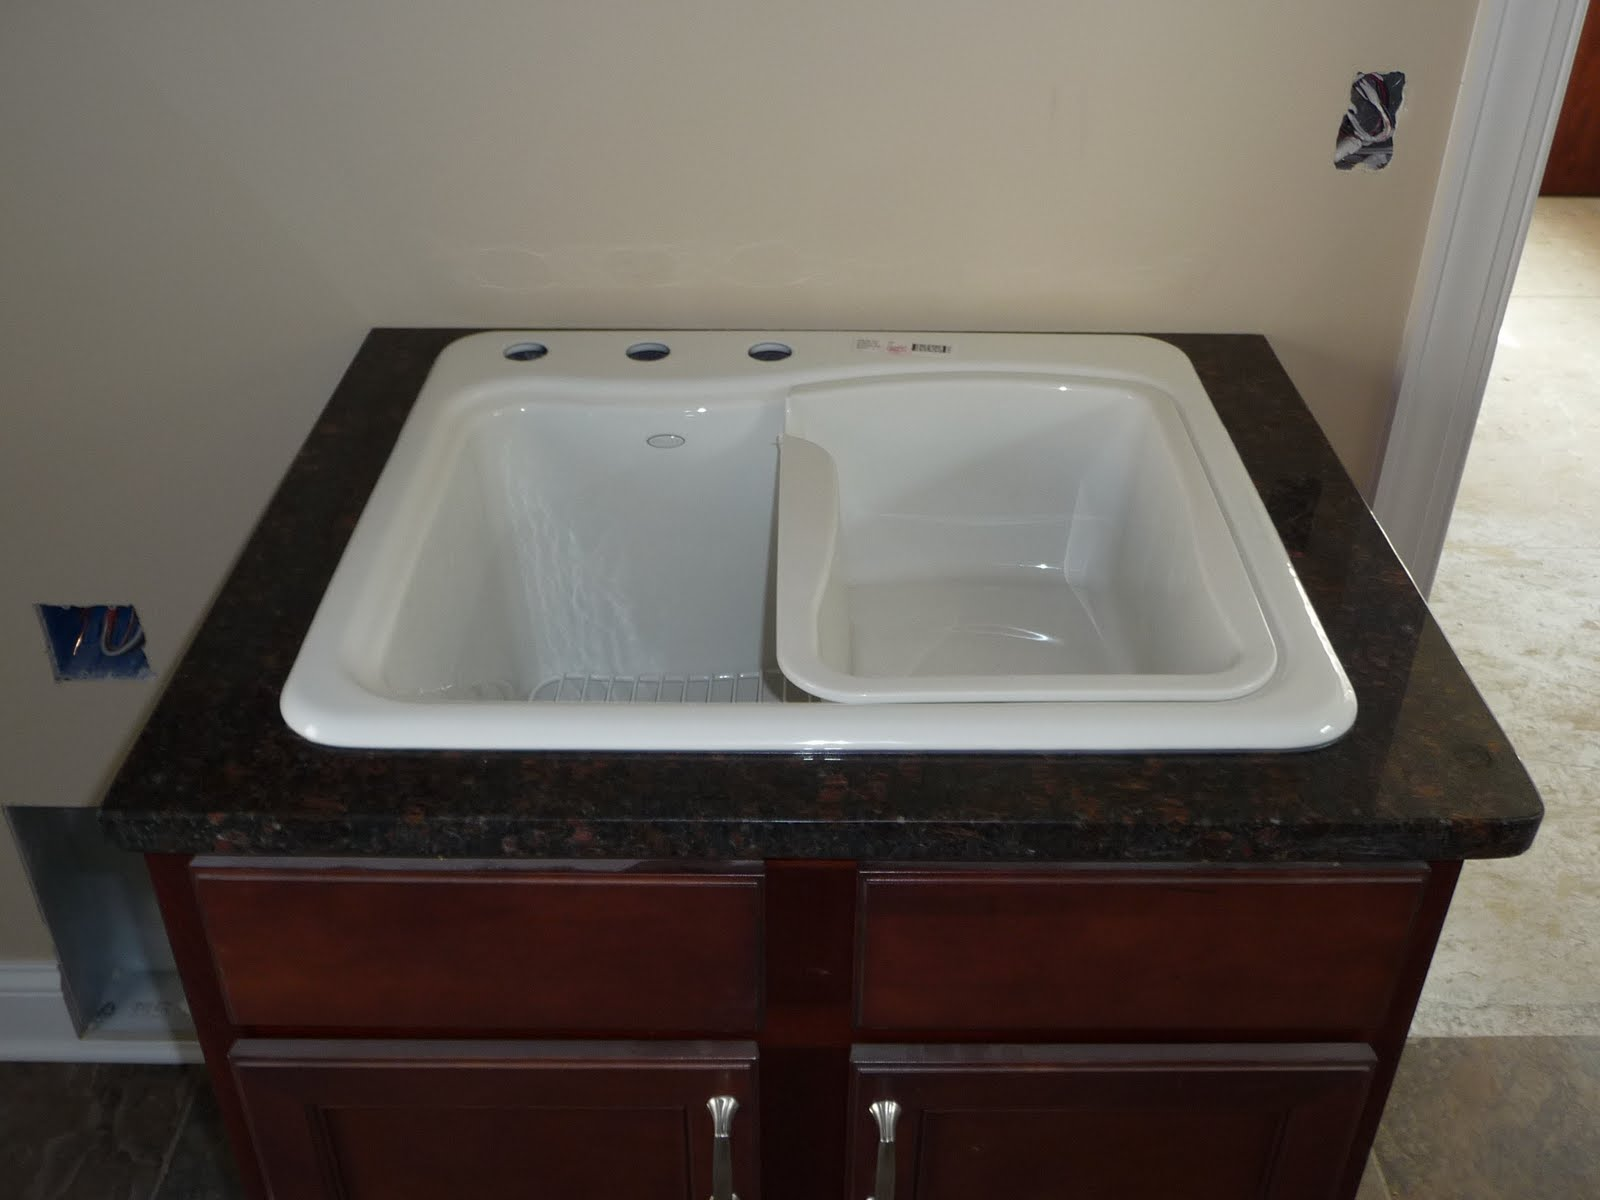 ... Grove, Minnesota: June 4th - Part 2 of 5 (Kitchen and Mud Room Sinks